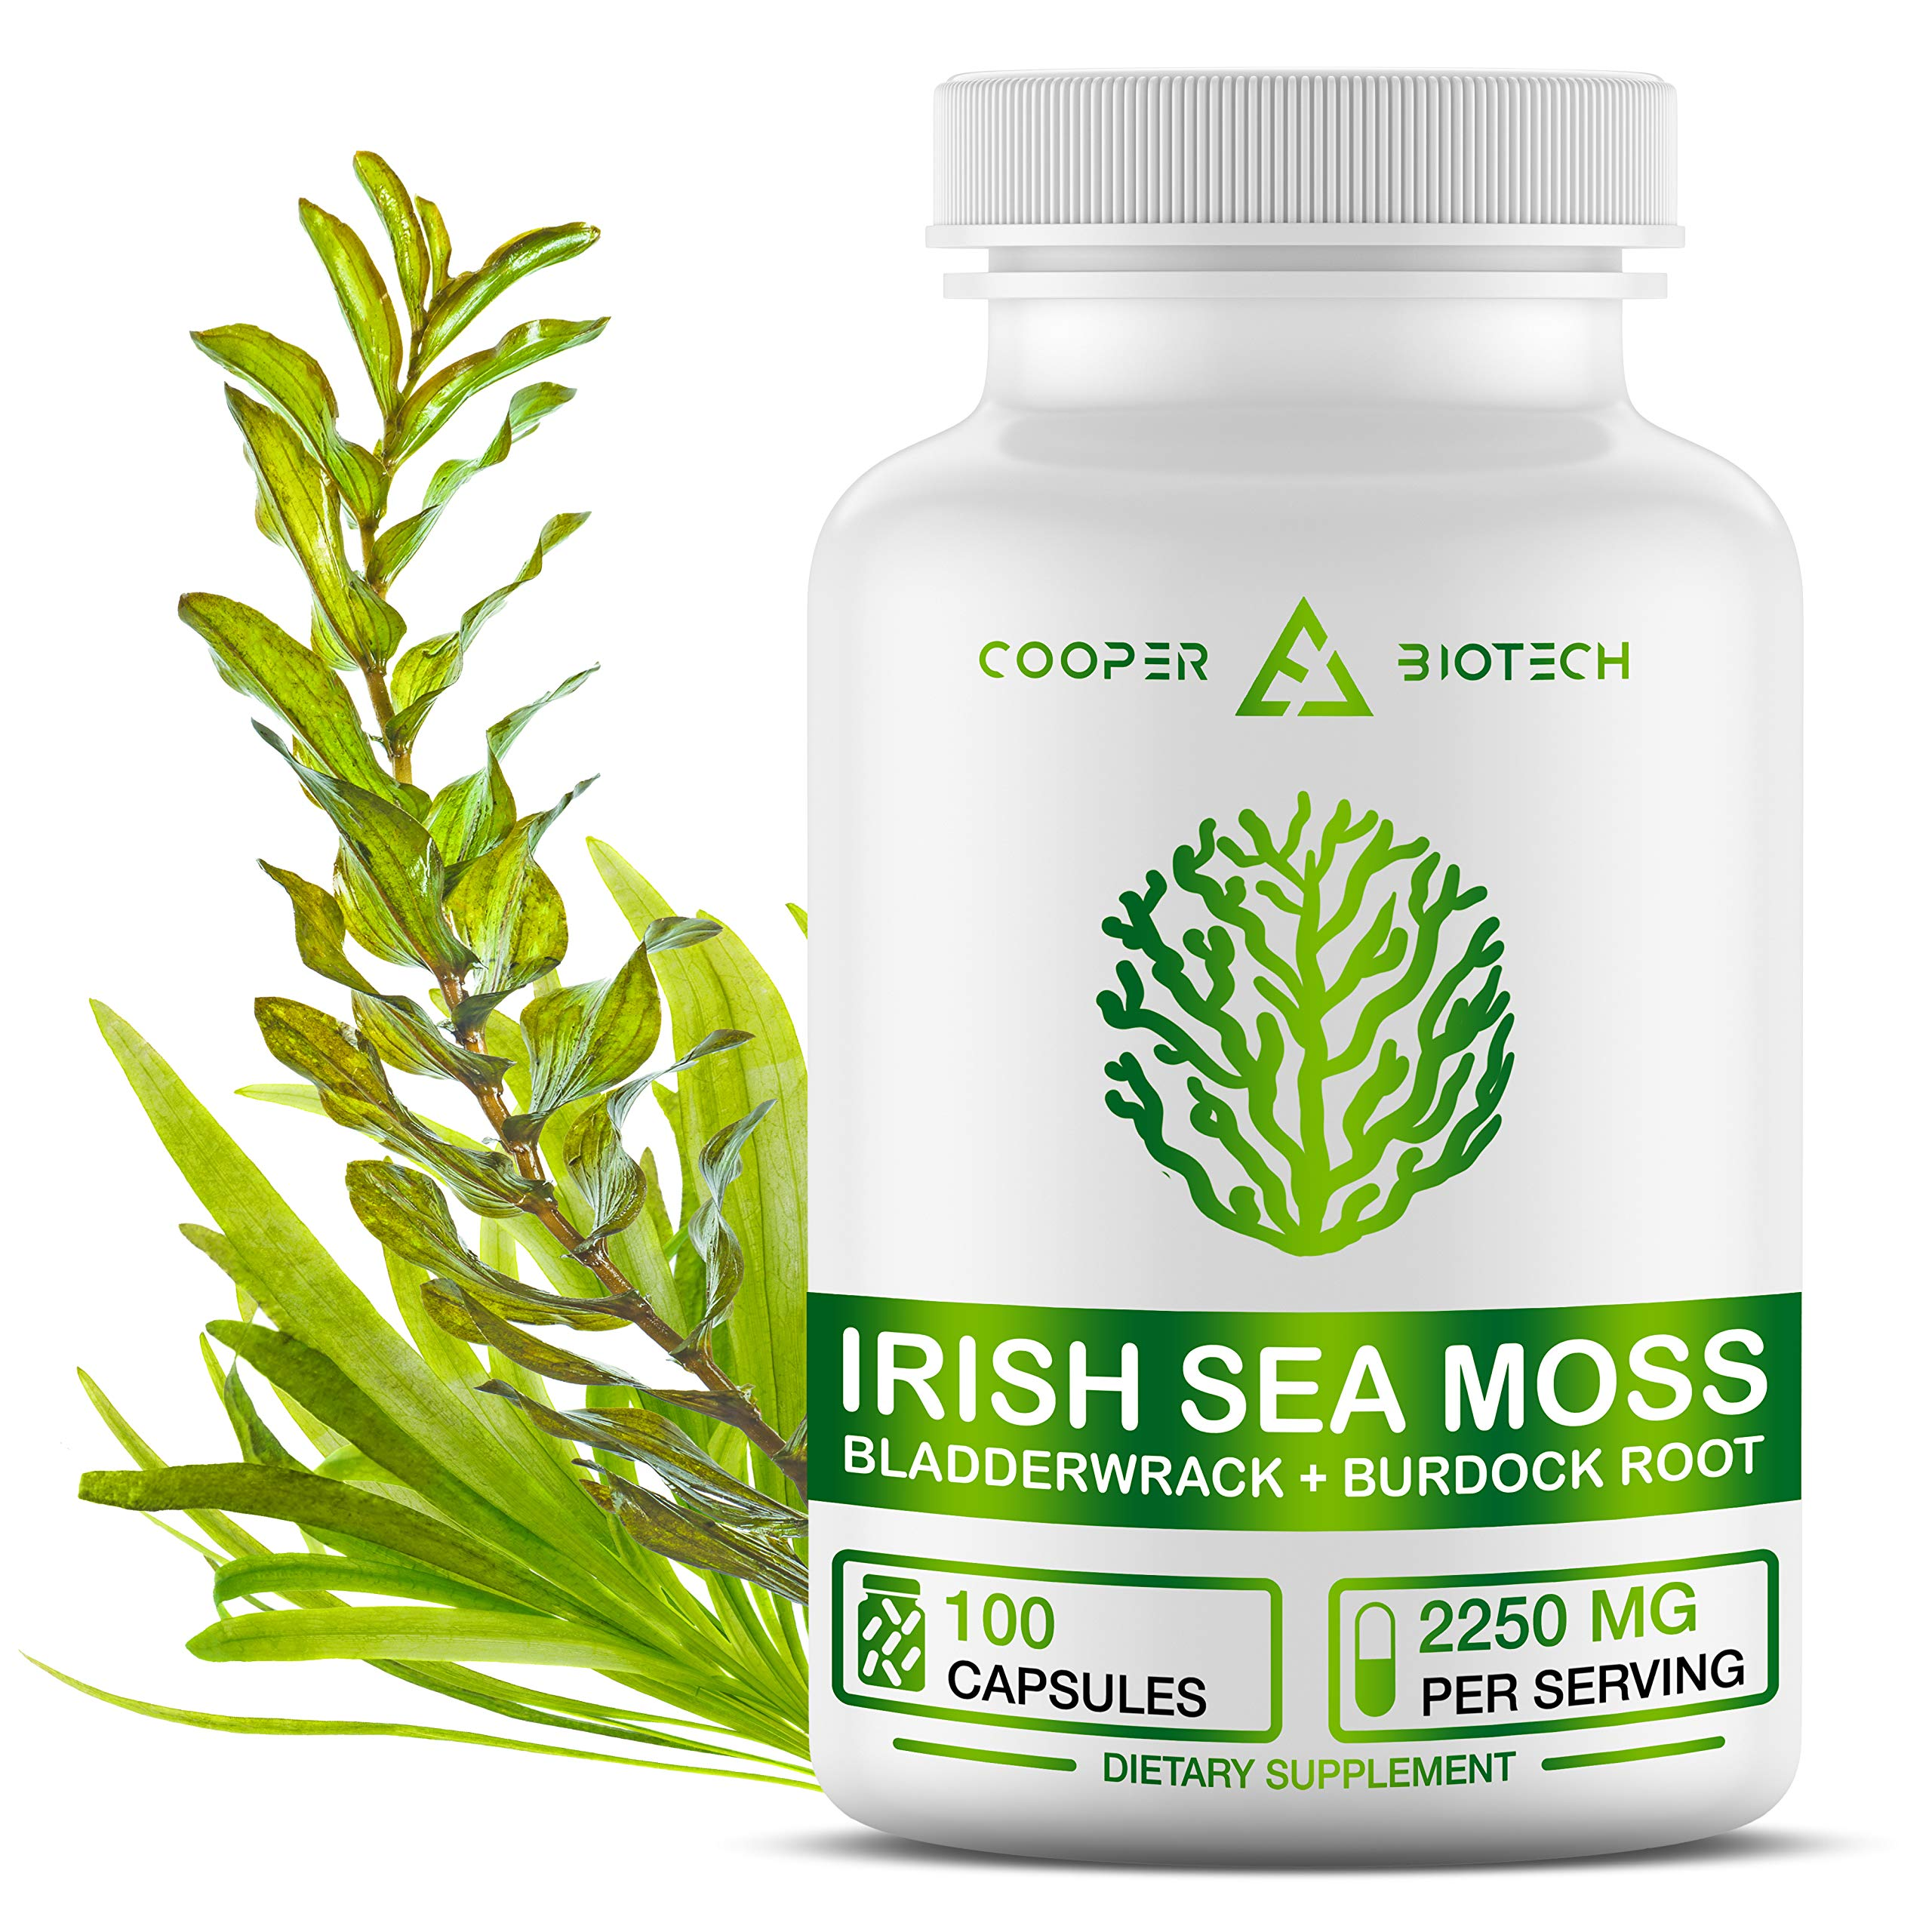 Irish Sea Moss Organic Supplement with Bladderwack and Burdock Root - Seamoss Raw Organic Pills - Wildcrafted Pure Sea Moss Powder - 100 Capsules 2250MG Serving